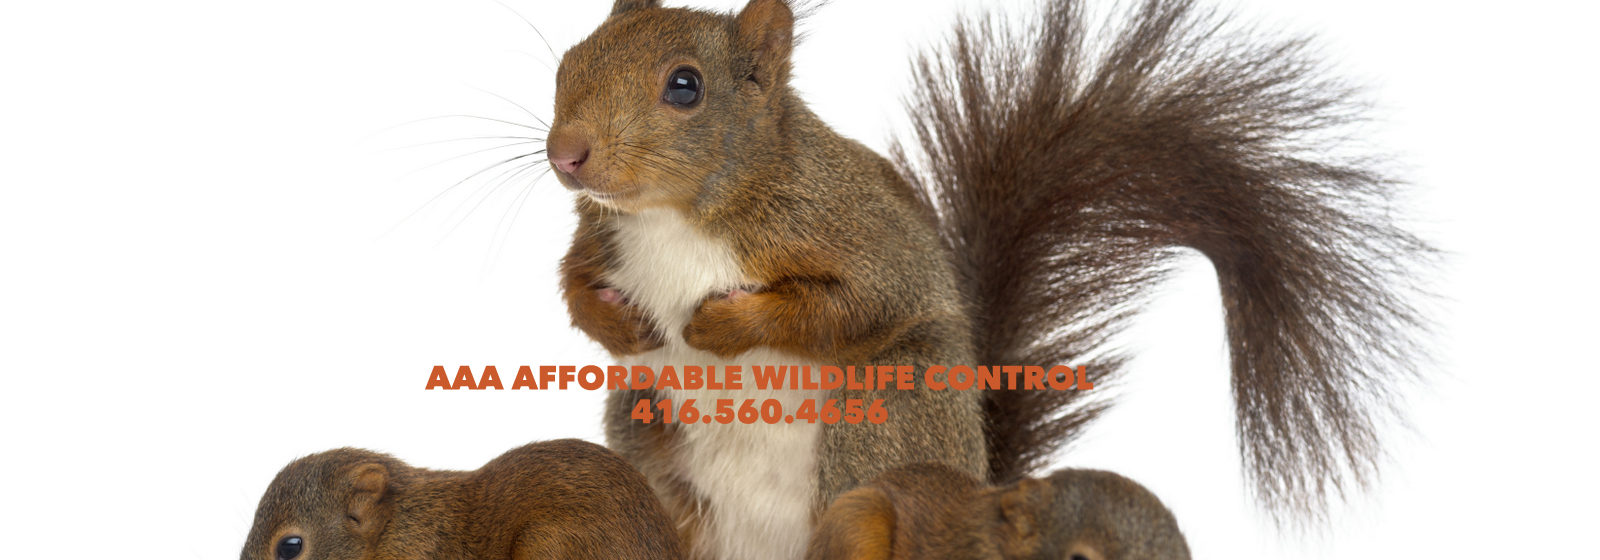 SQUIRREL REMOVAL TORONTO - Squirrel Control Toronto, Wildlife Removal Toronto